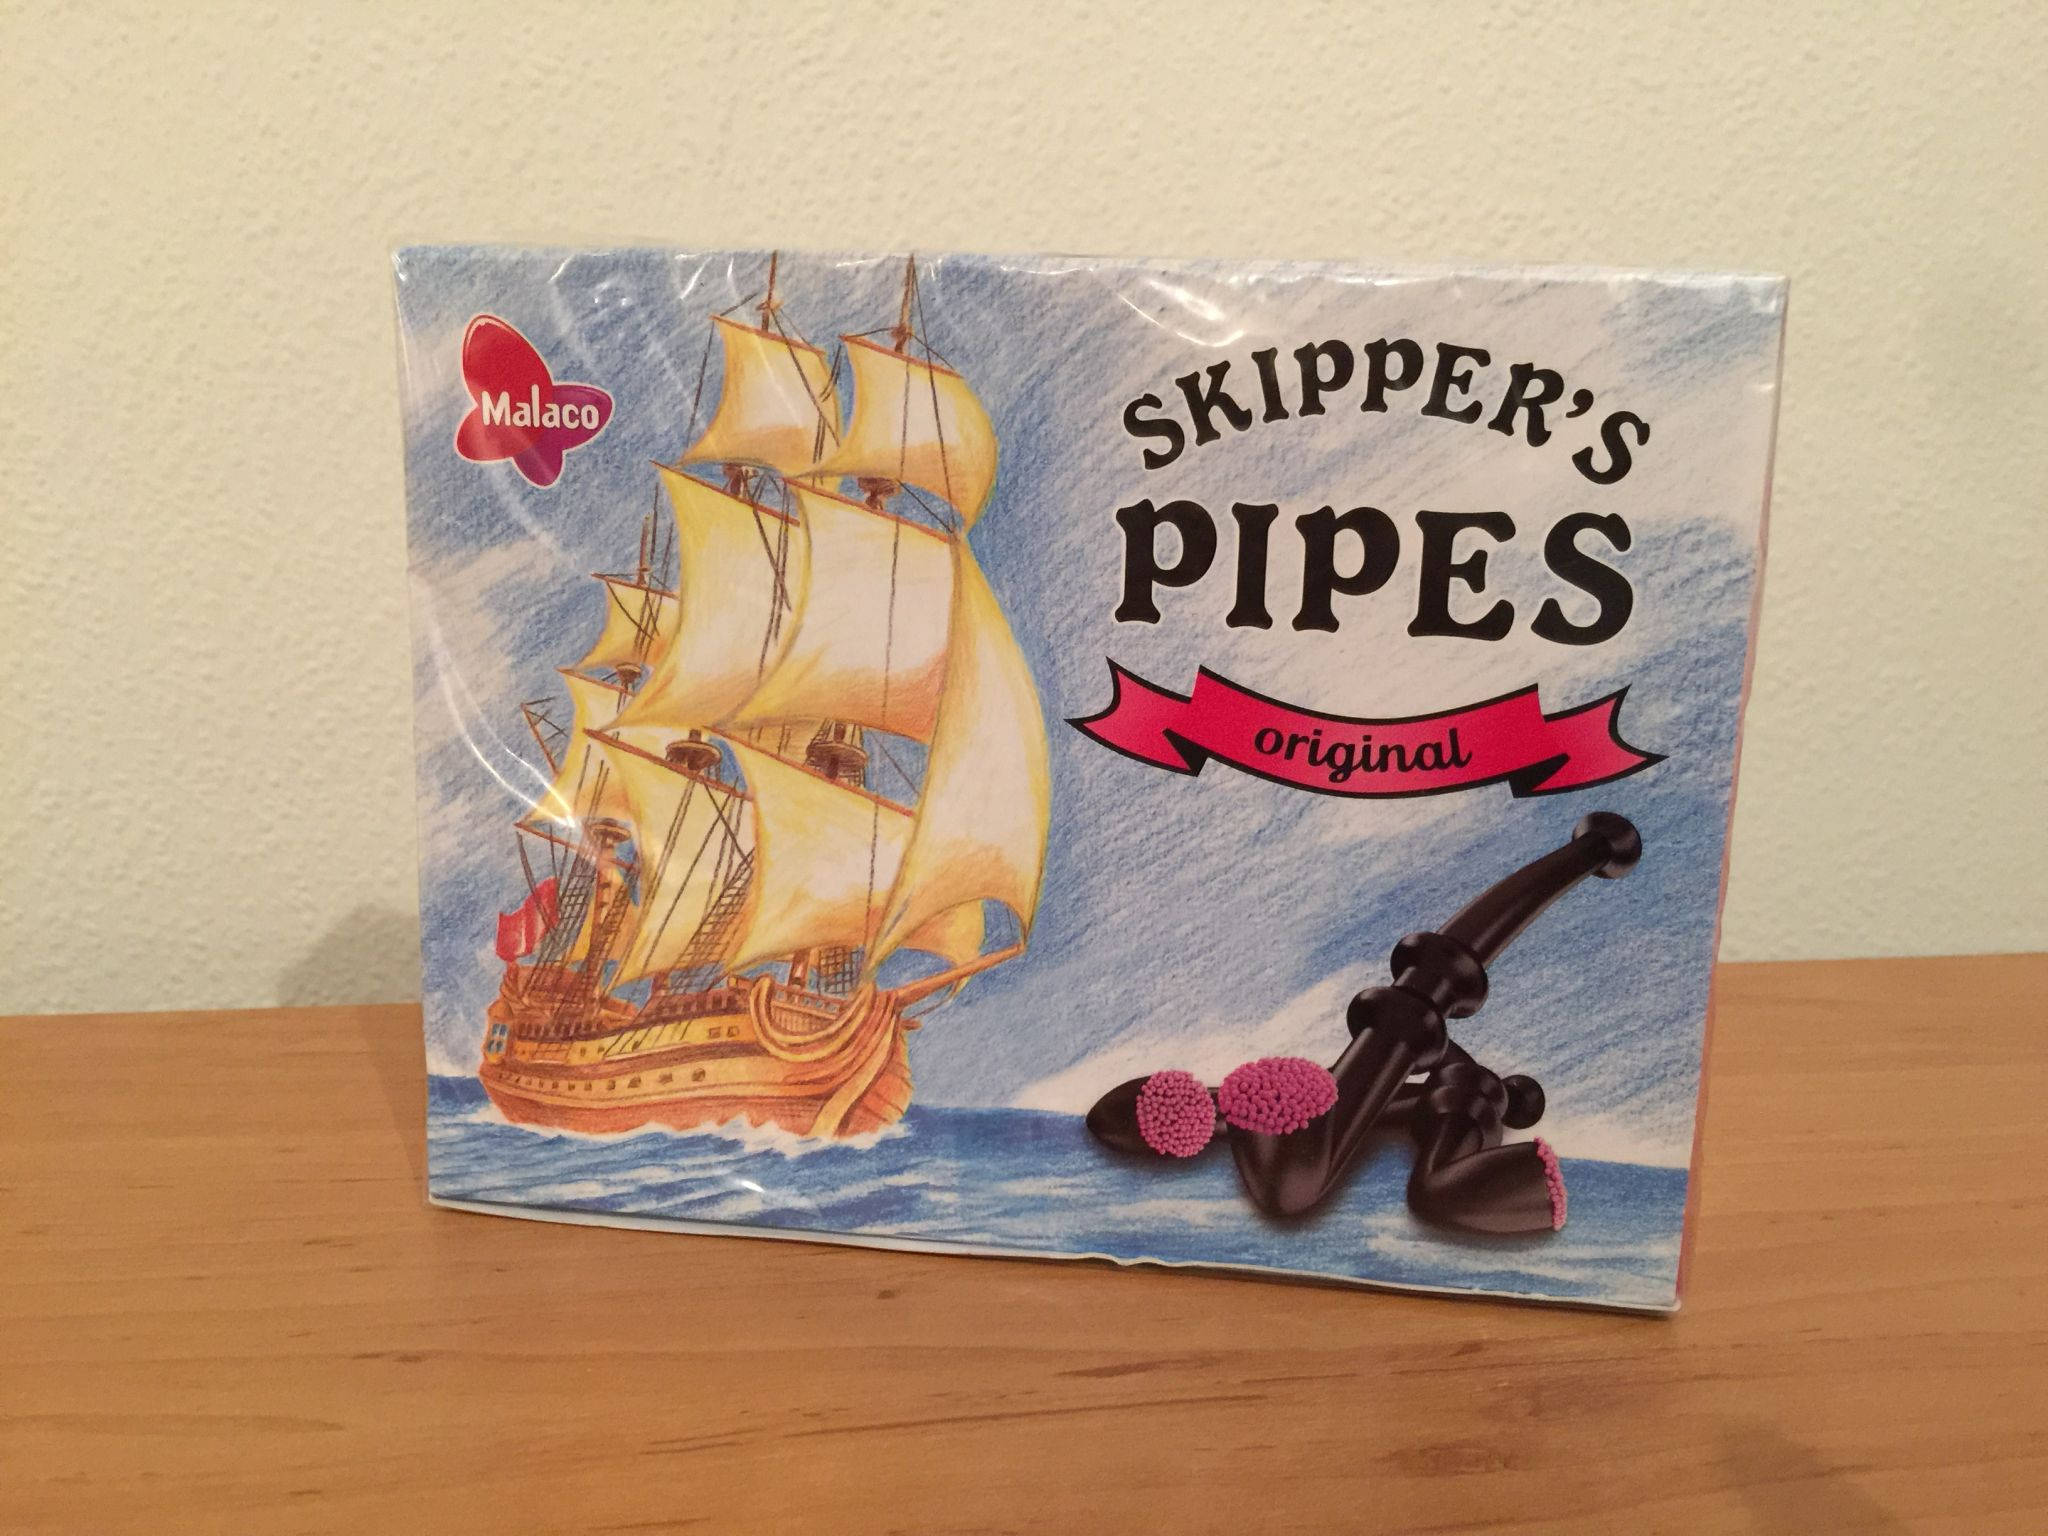 Die Skipper's Pipes aus Schweden